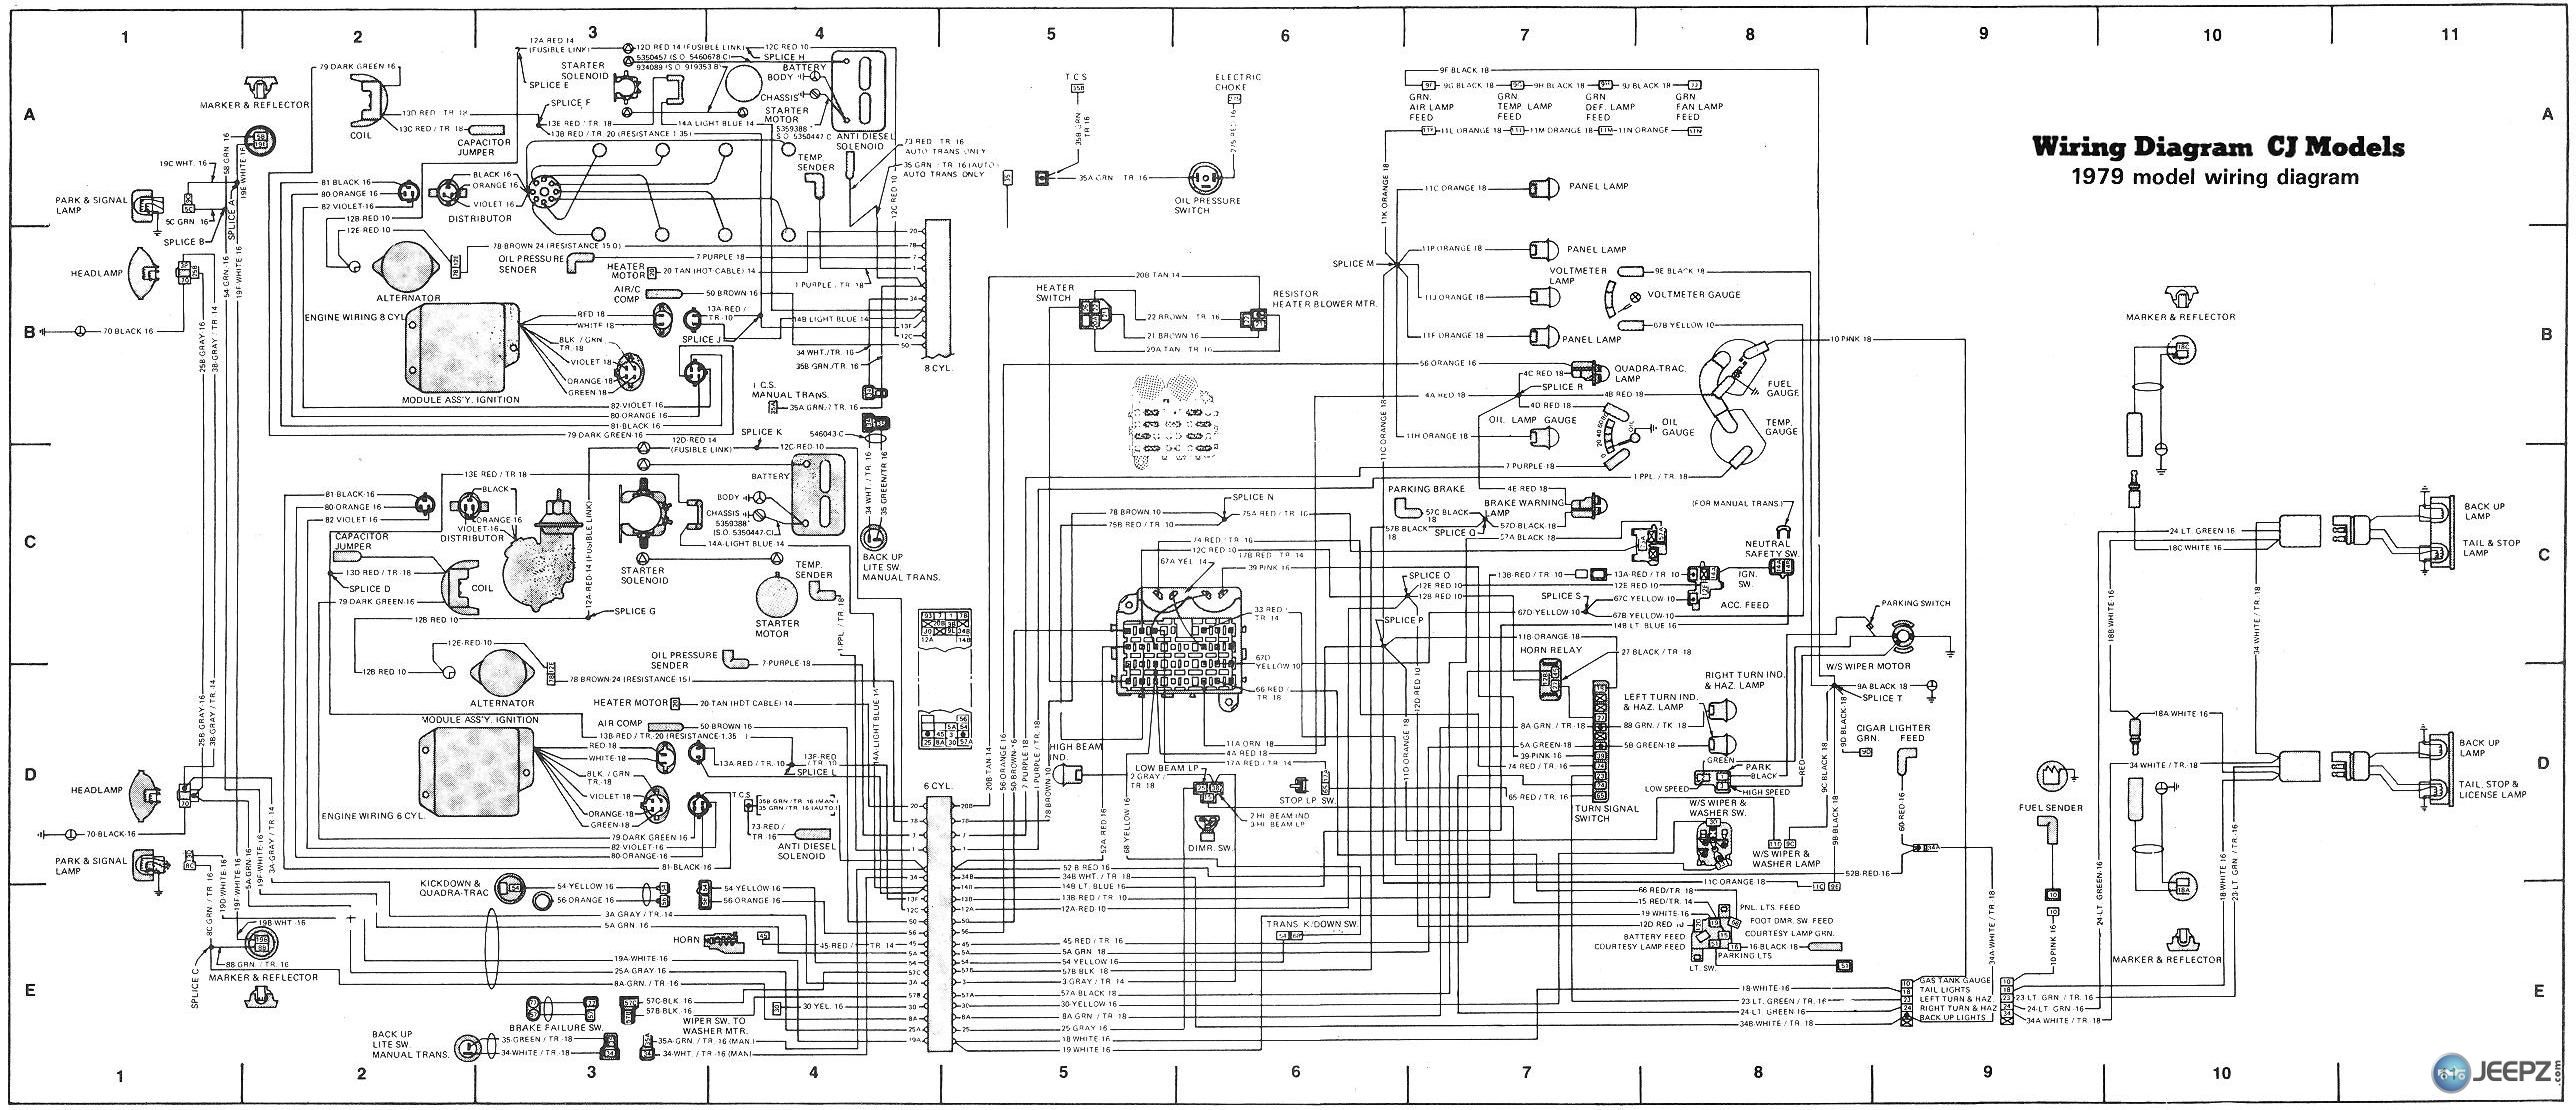 1991 Jeep Wrangler Wiring Diagram Roc Grp Org At Jeep Diagrams 95 Jeep  Wrangler Radio Wiring Diagram 1991 Jeep Wiring Diagram